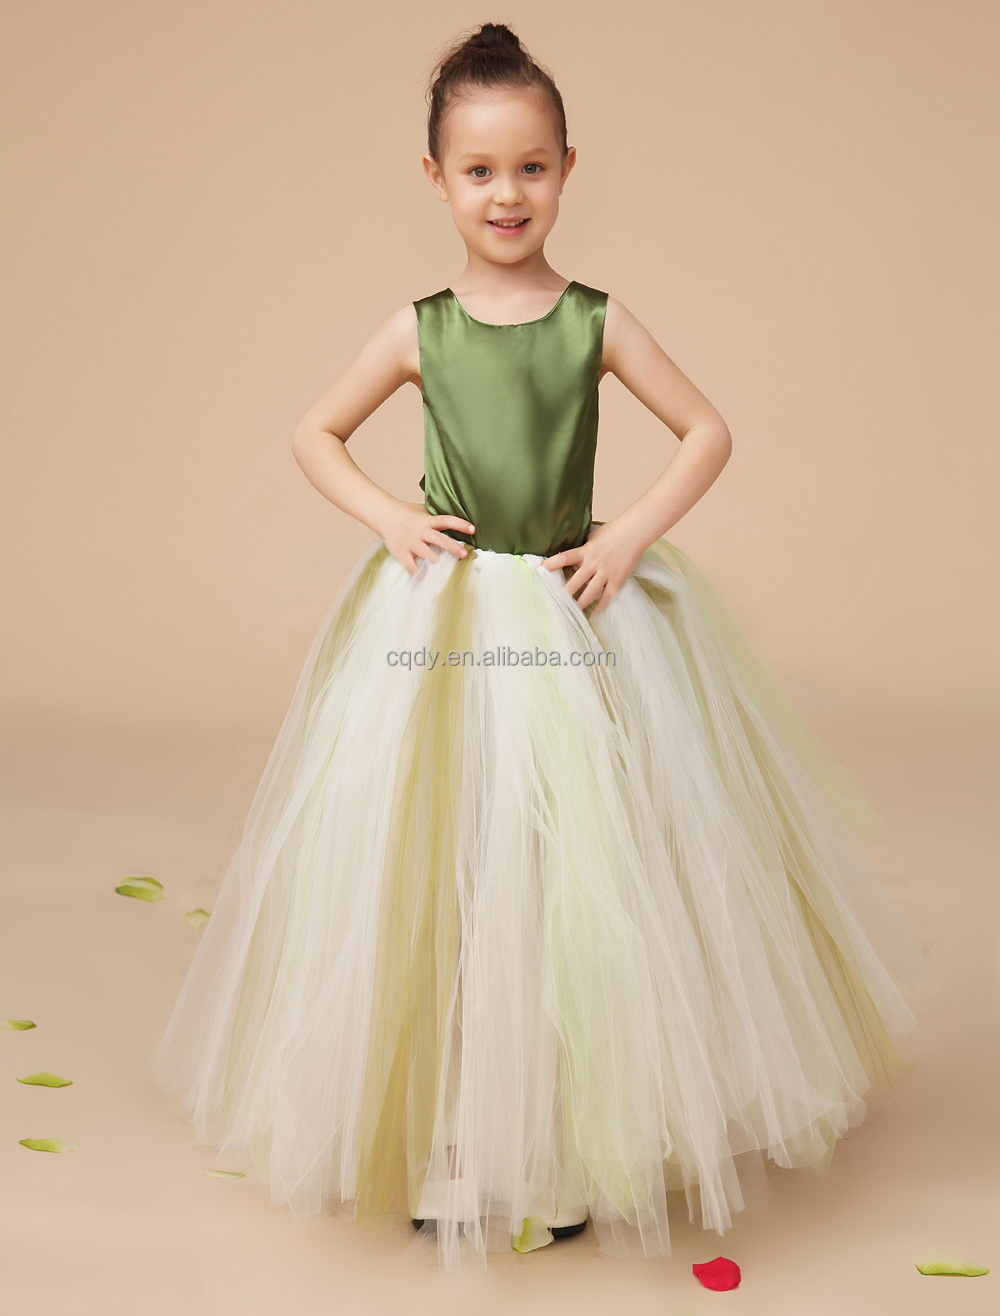 Newest Product For Women Girls Kids Dresses For Weddings Pakistani,Occasion Dresses For Wedding Guests John Lewis